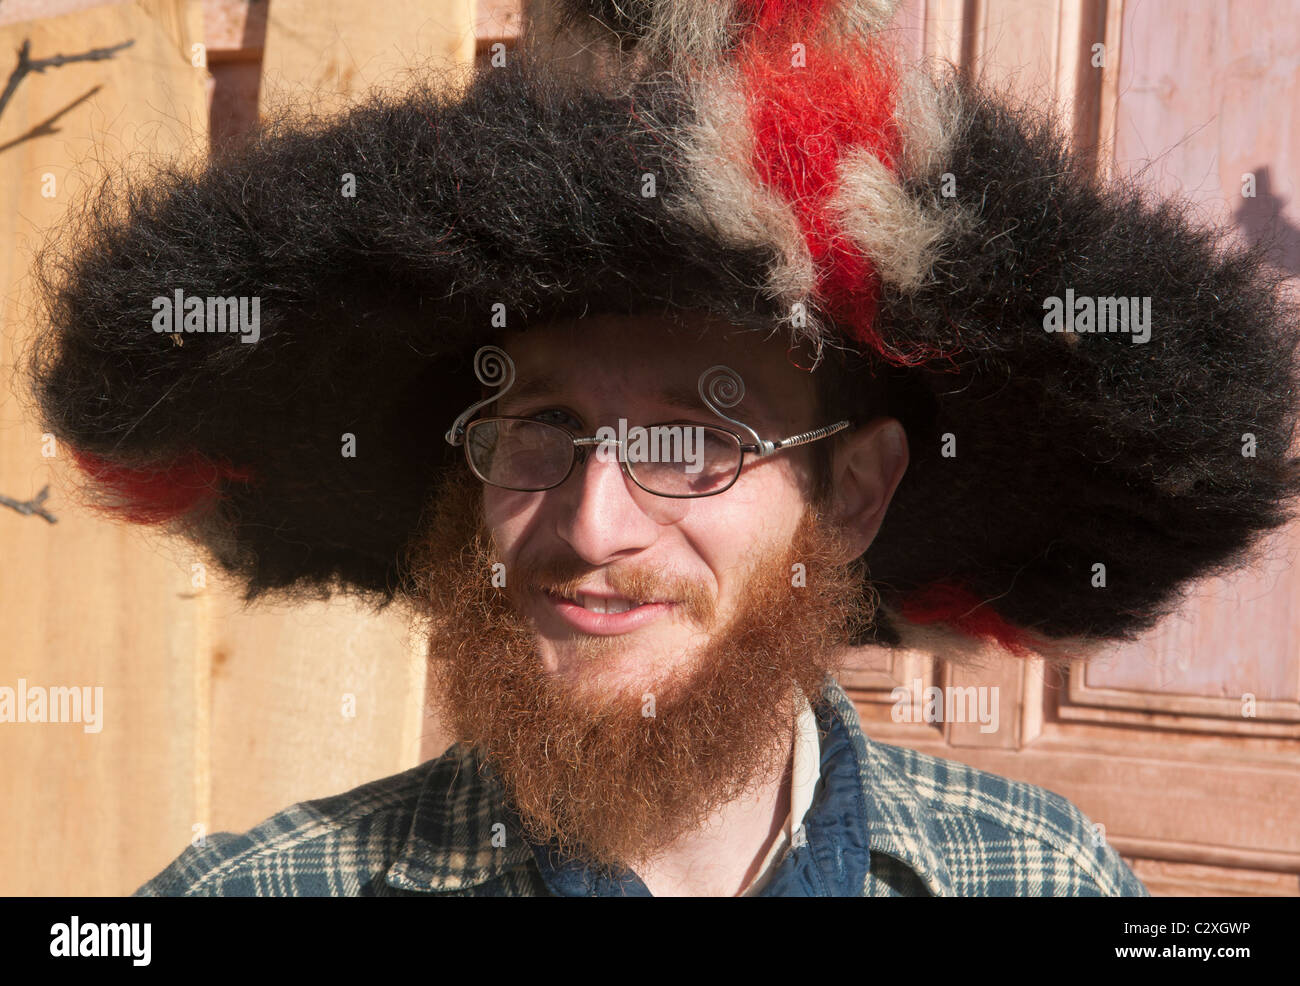 young Jewish guy with red beard c50d5c19218